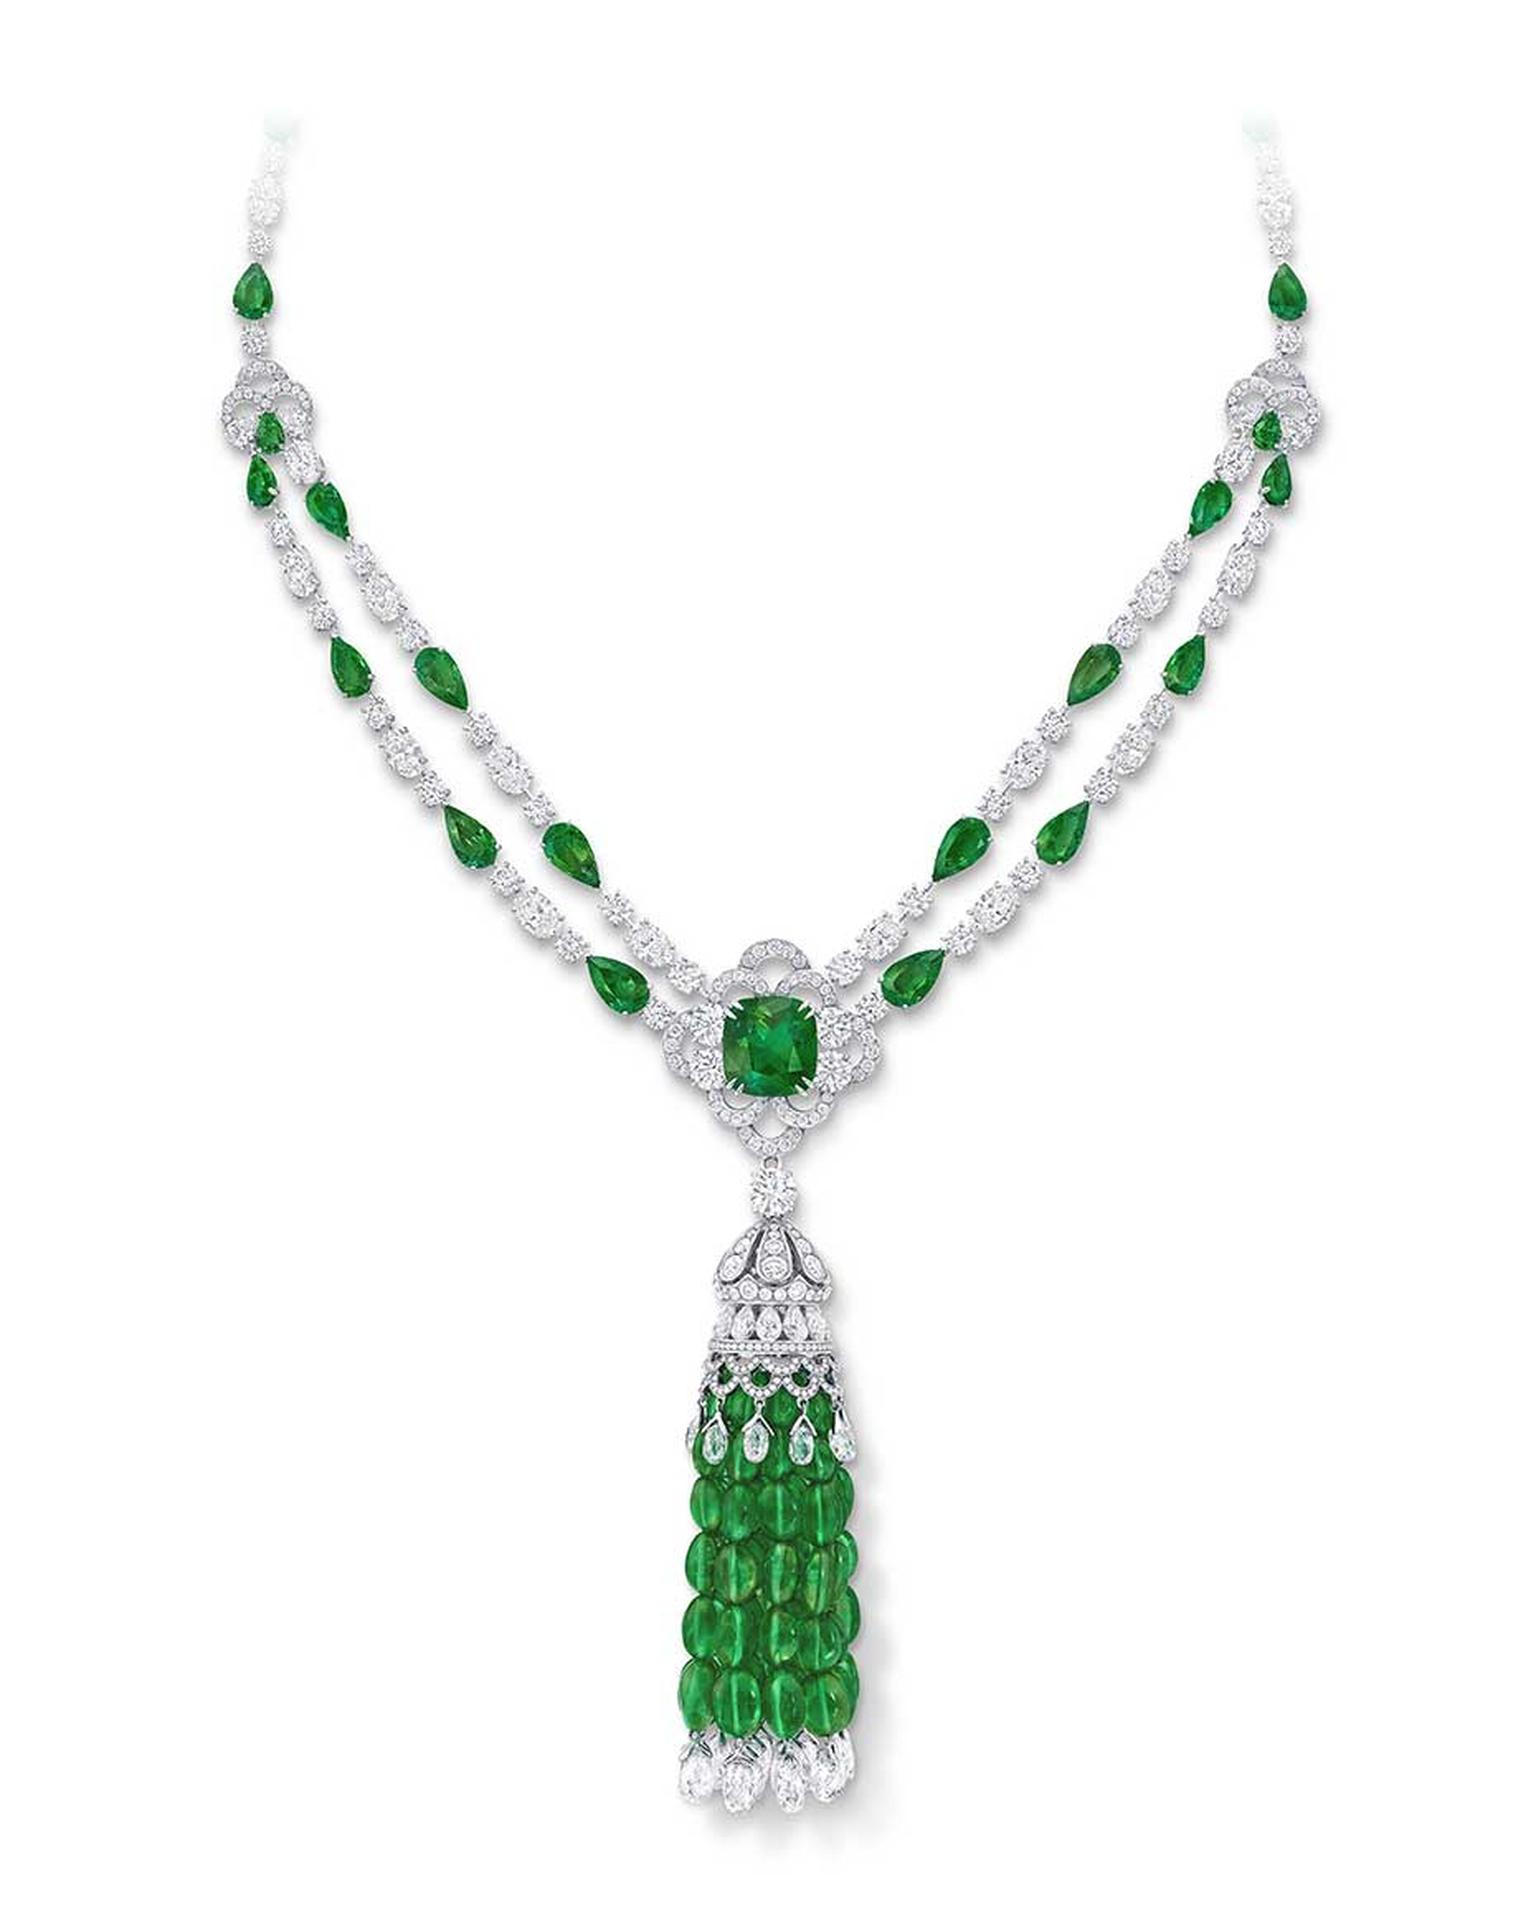 Graff emerald and diamond tassel necklace featuring a 10.03ct cushion-cut Colombian emerald.